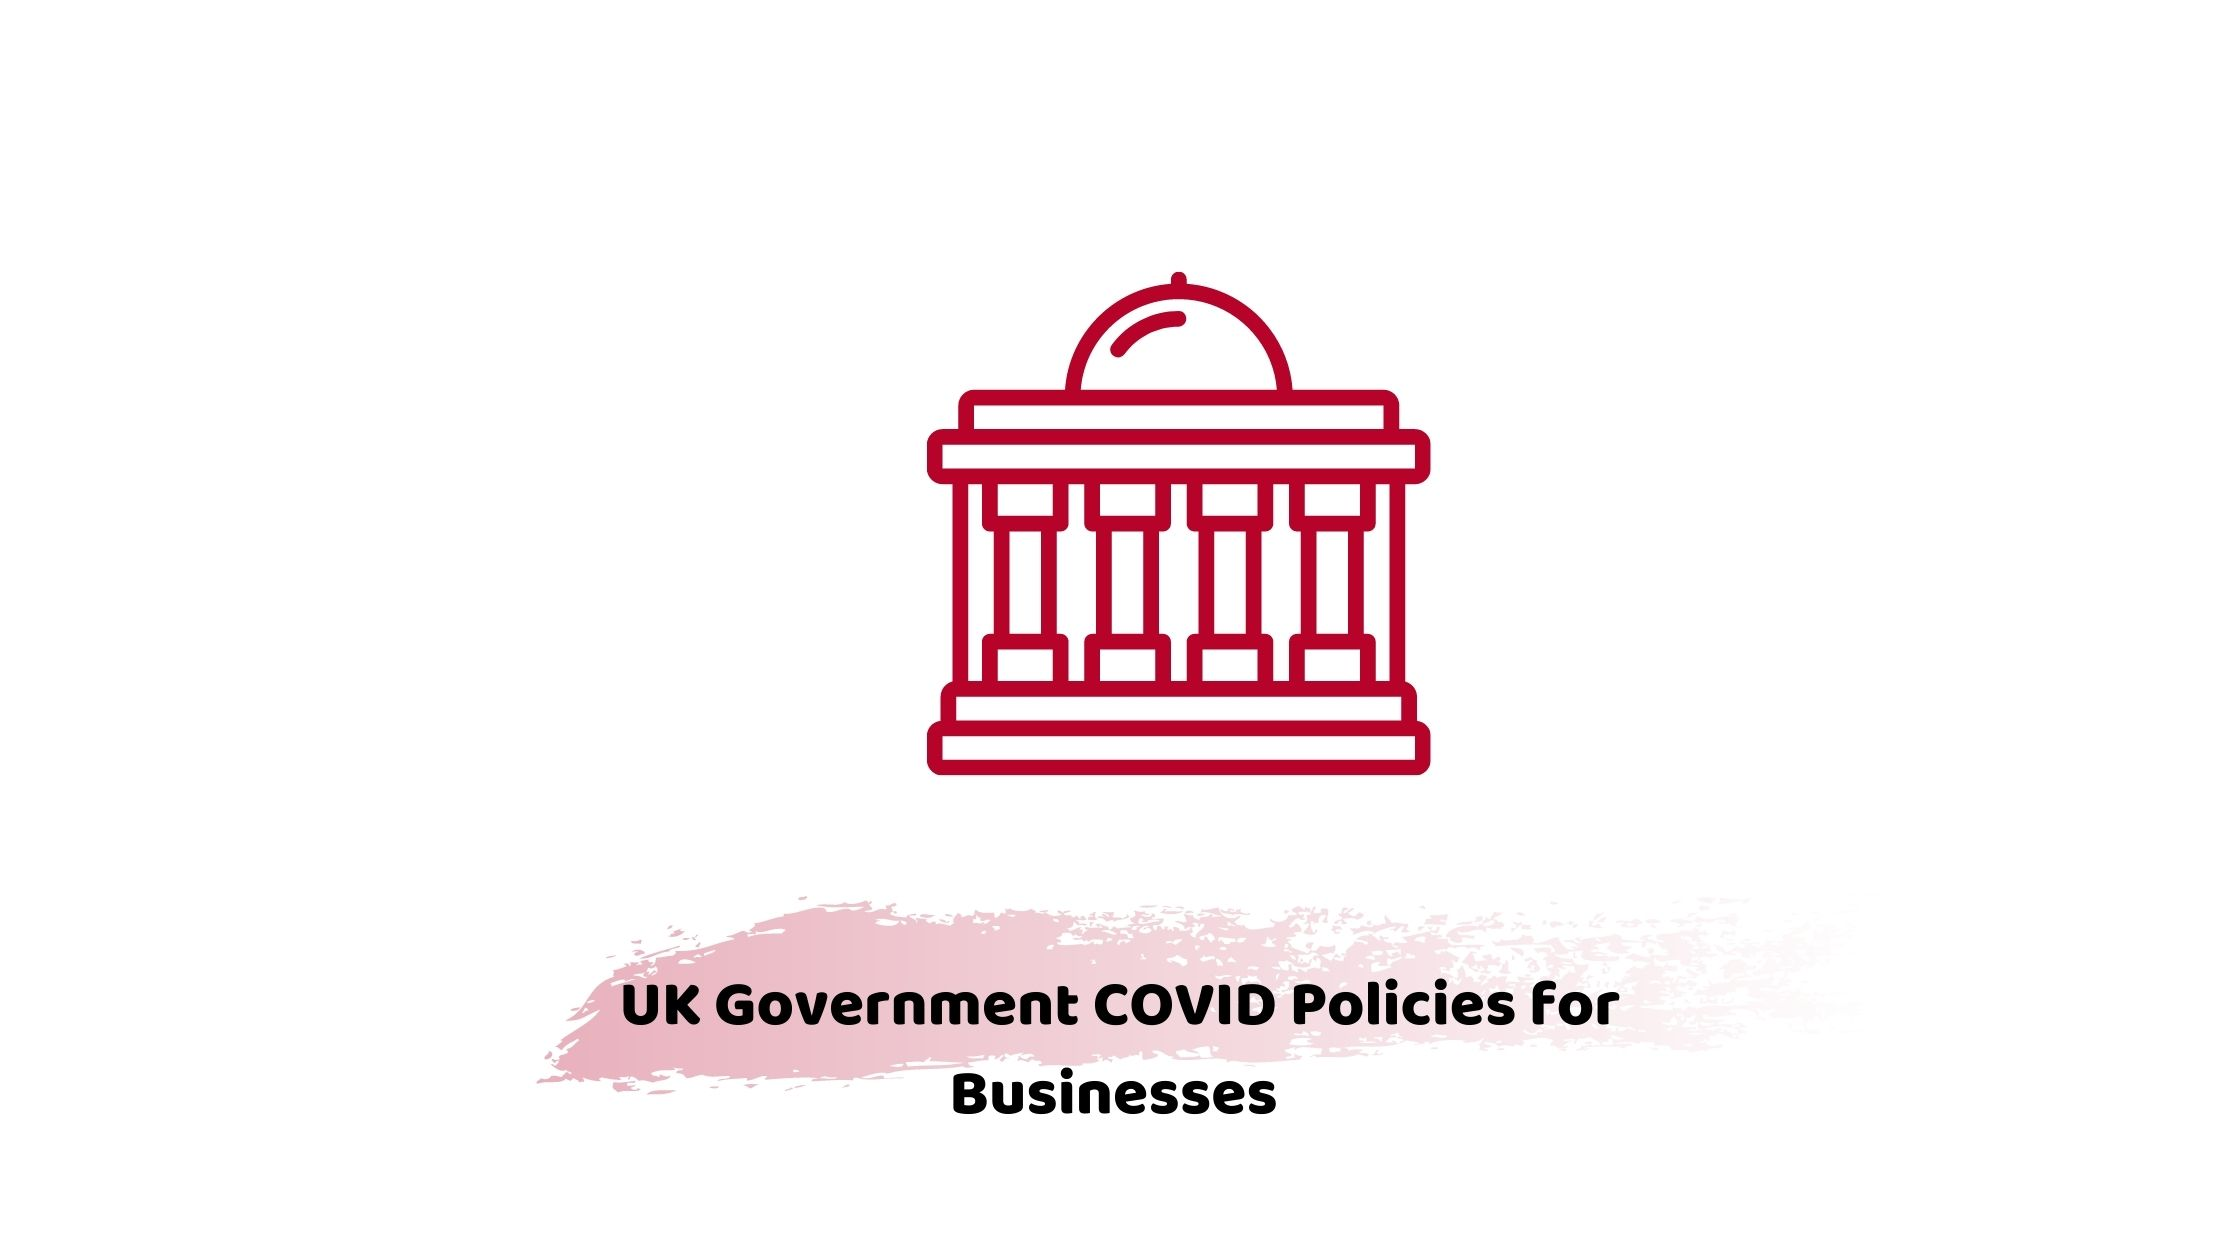 UK Government COVID Policies for Businesses